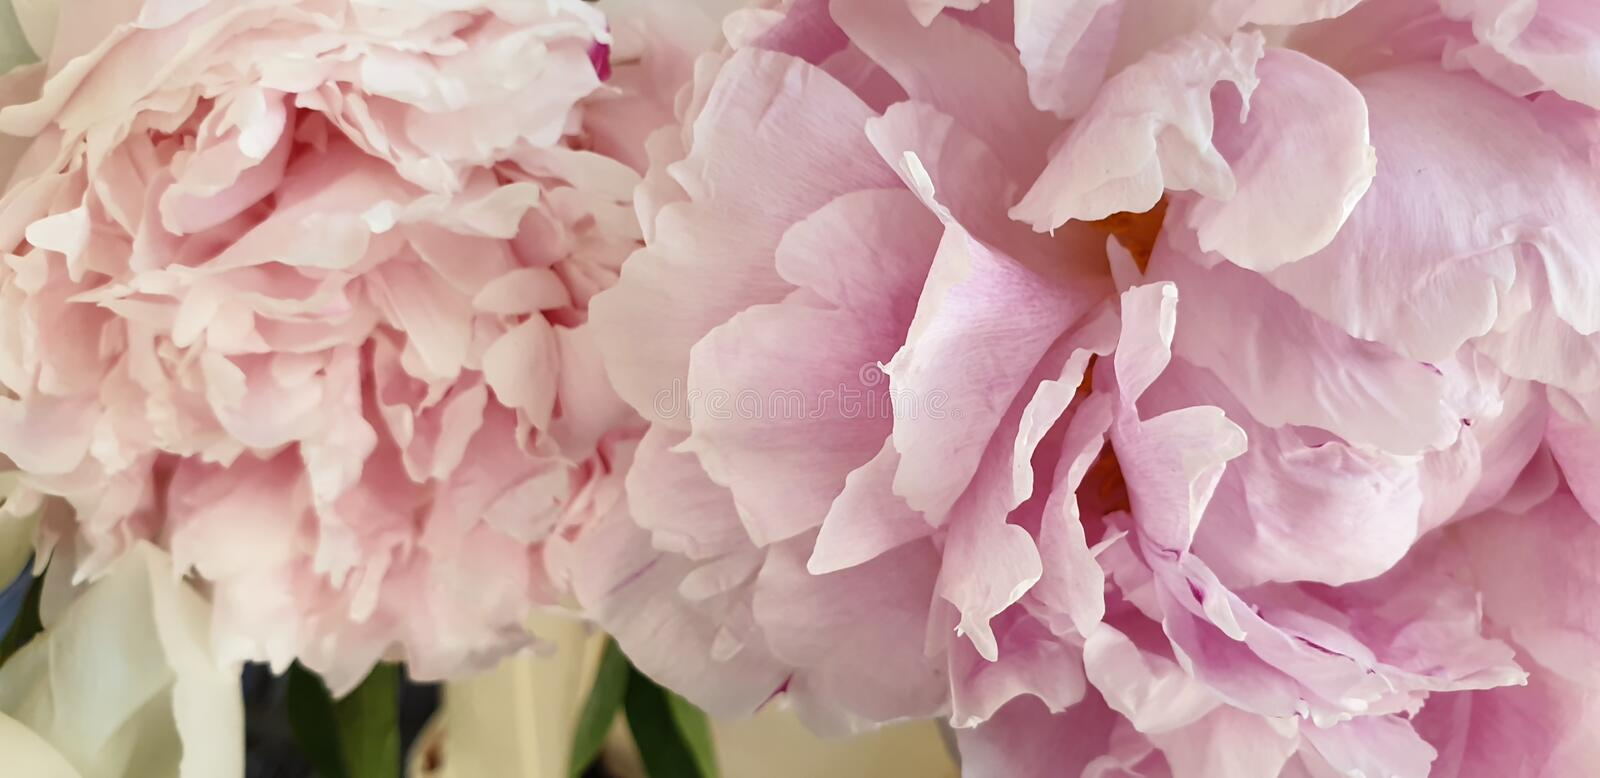 Pink peonies romantic flowers background stock photos